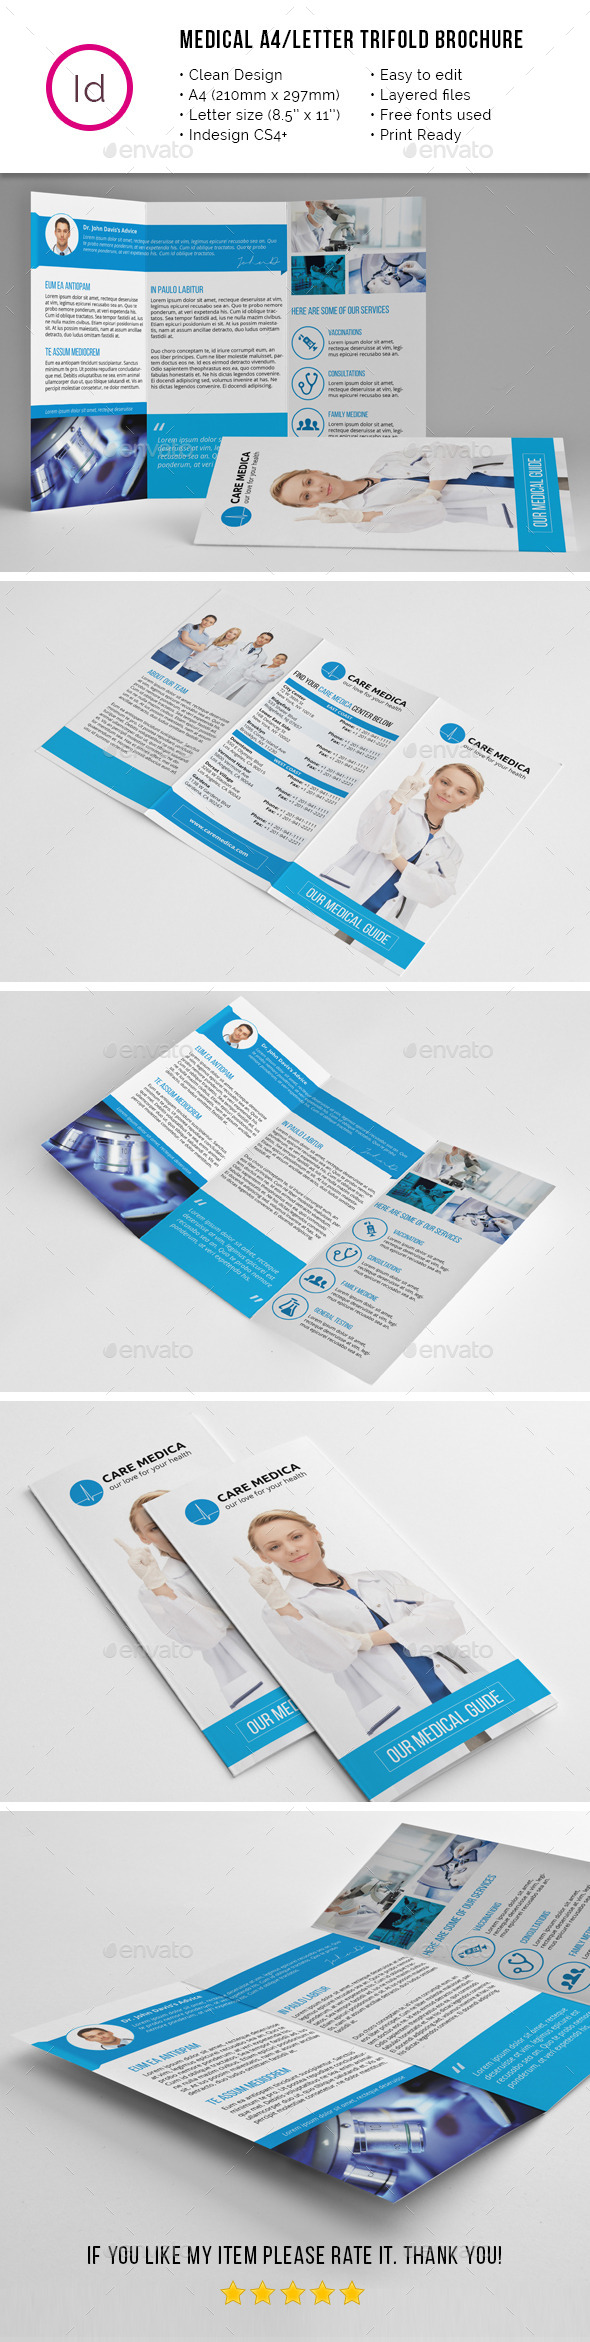 Medical A4 / Letter Trifold Brochure - Corporate Brochures